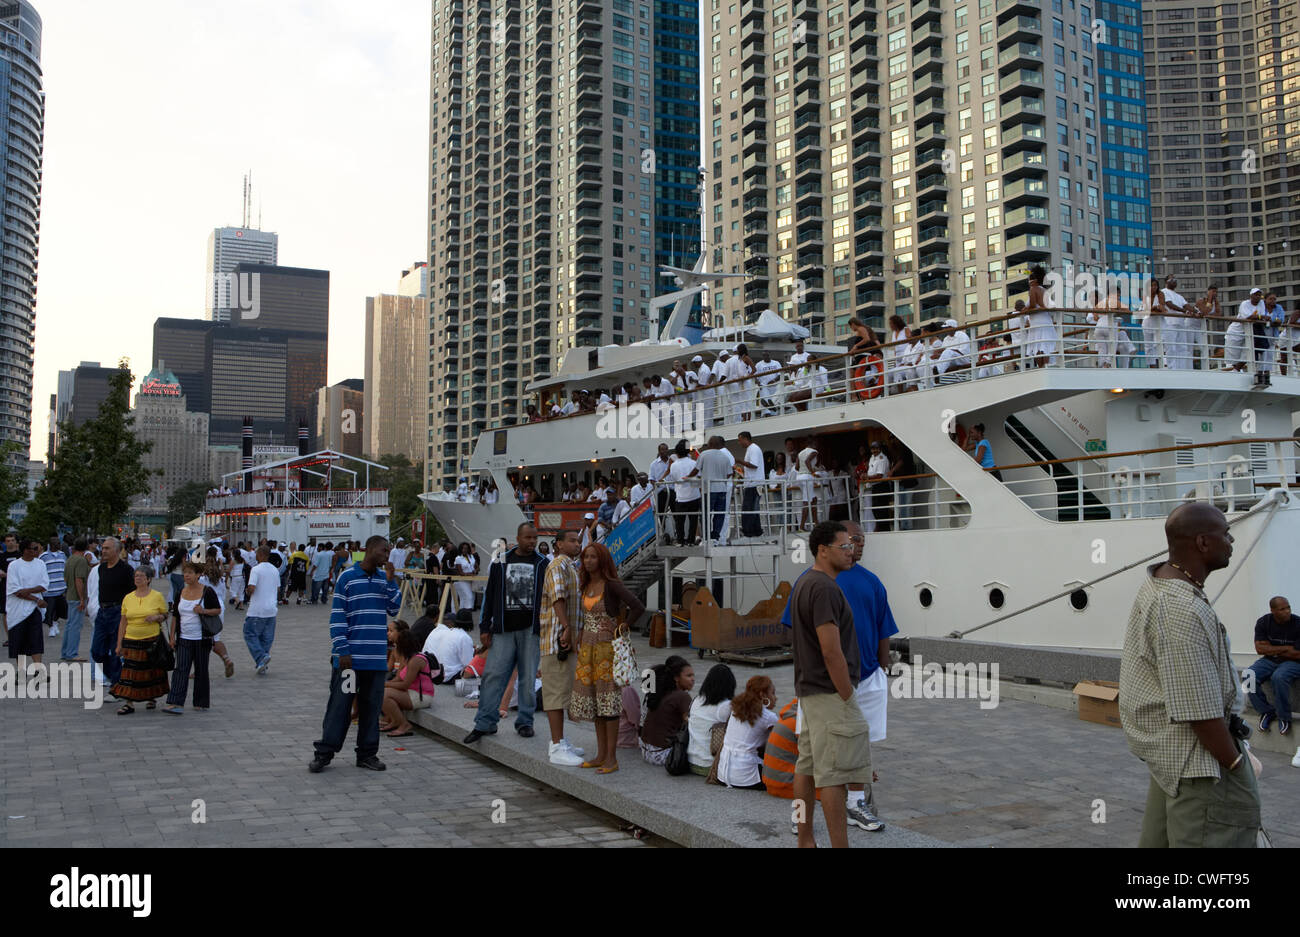 Toronto - boats surrounded by skyscrapers at Harbourfront Centre - Stock Image